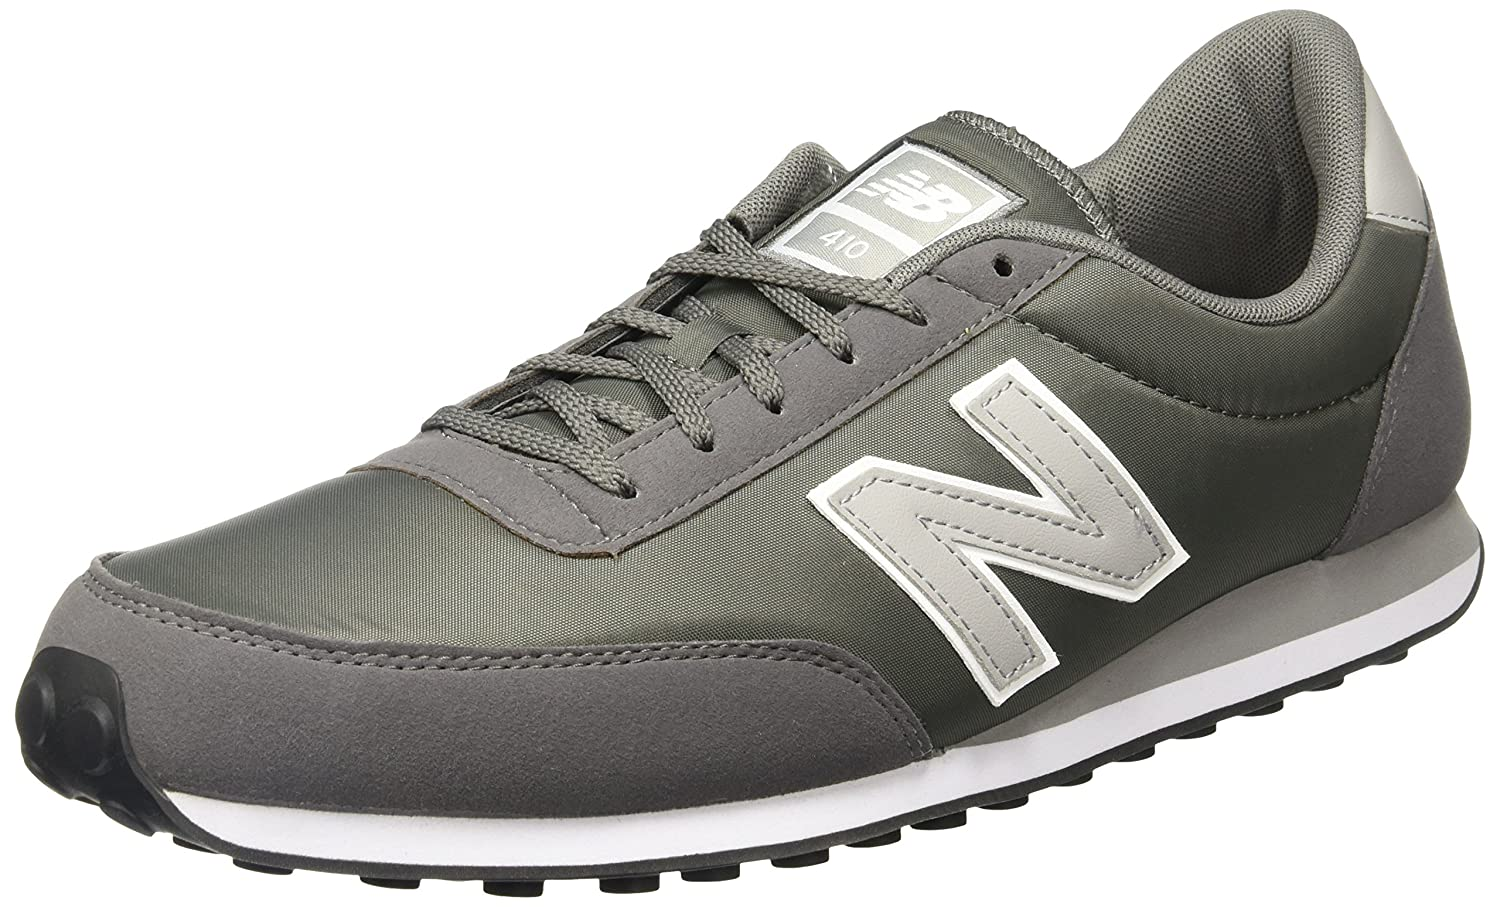 U410, Unisex Adults Low-Top Sneakers New Balance